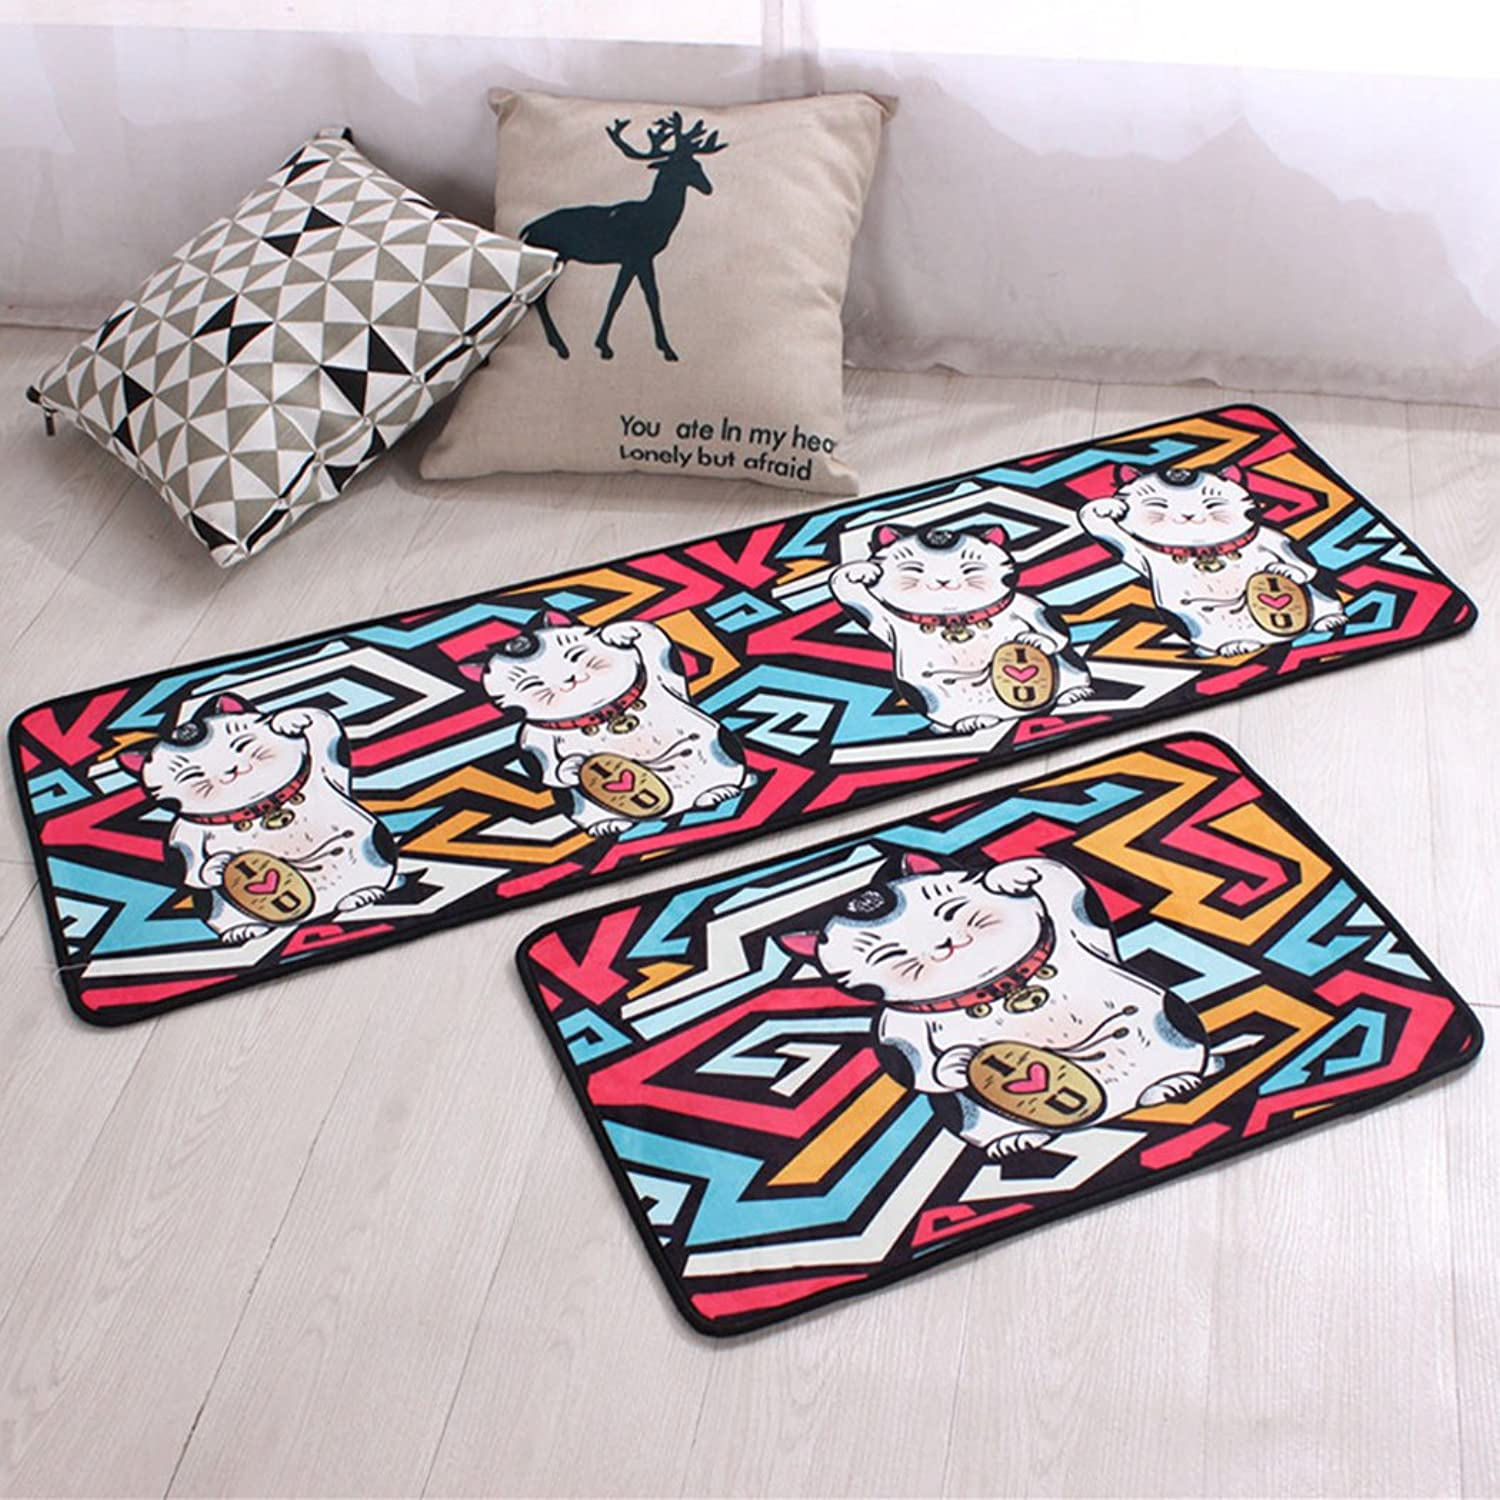 SUN-Shine Durable Home and Kitchen Rug Runners with Non-Slip Rubber Backing Indoor Doormats Floor Mat Carpet, Creative Lucky Cats